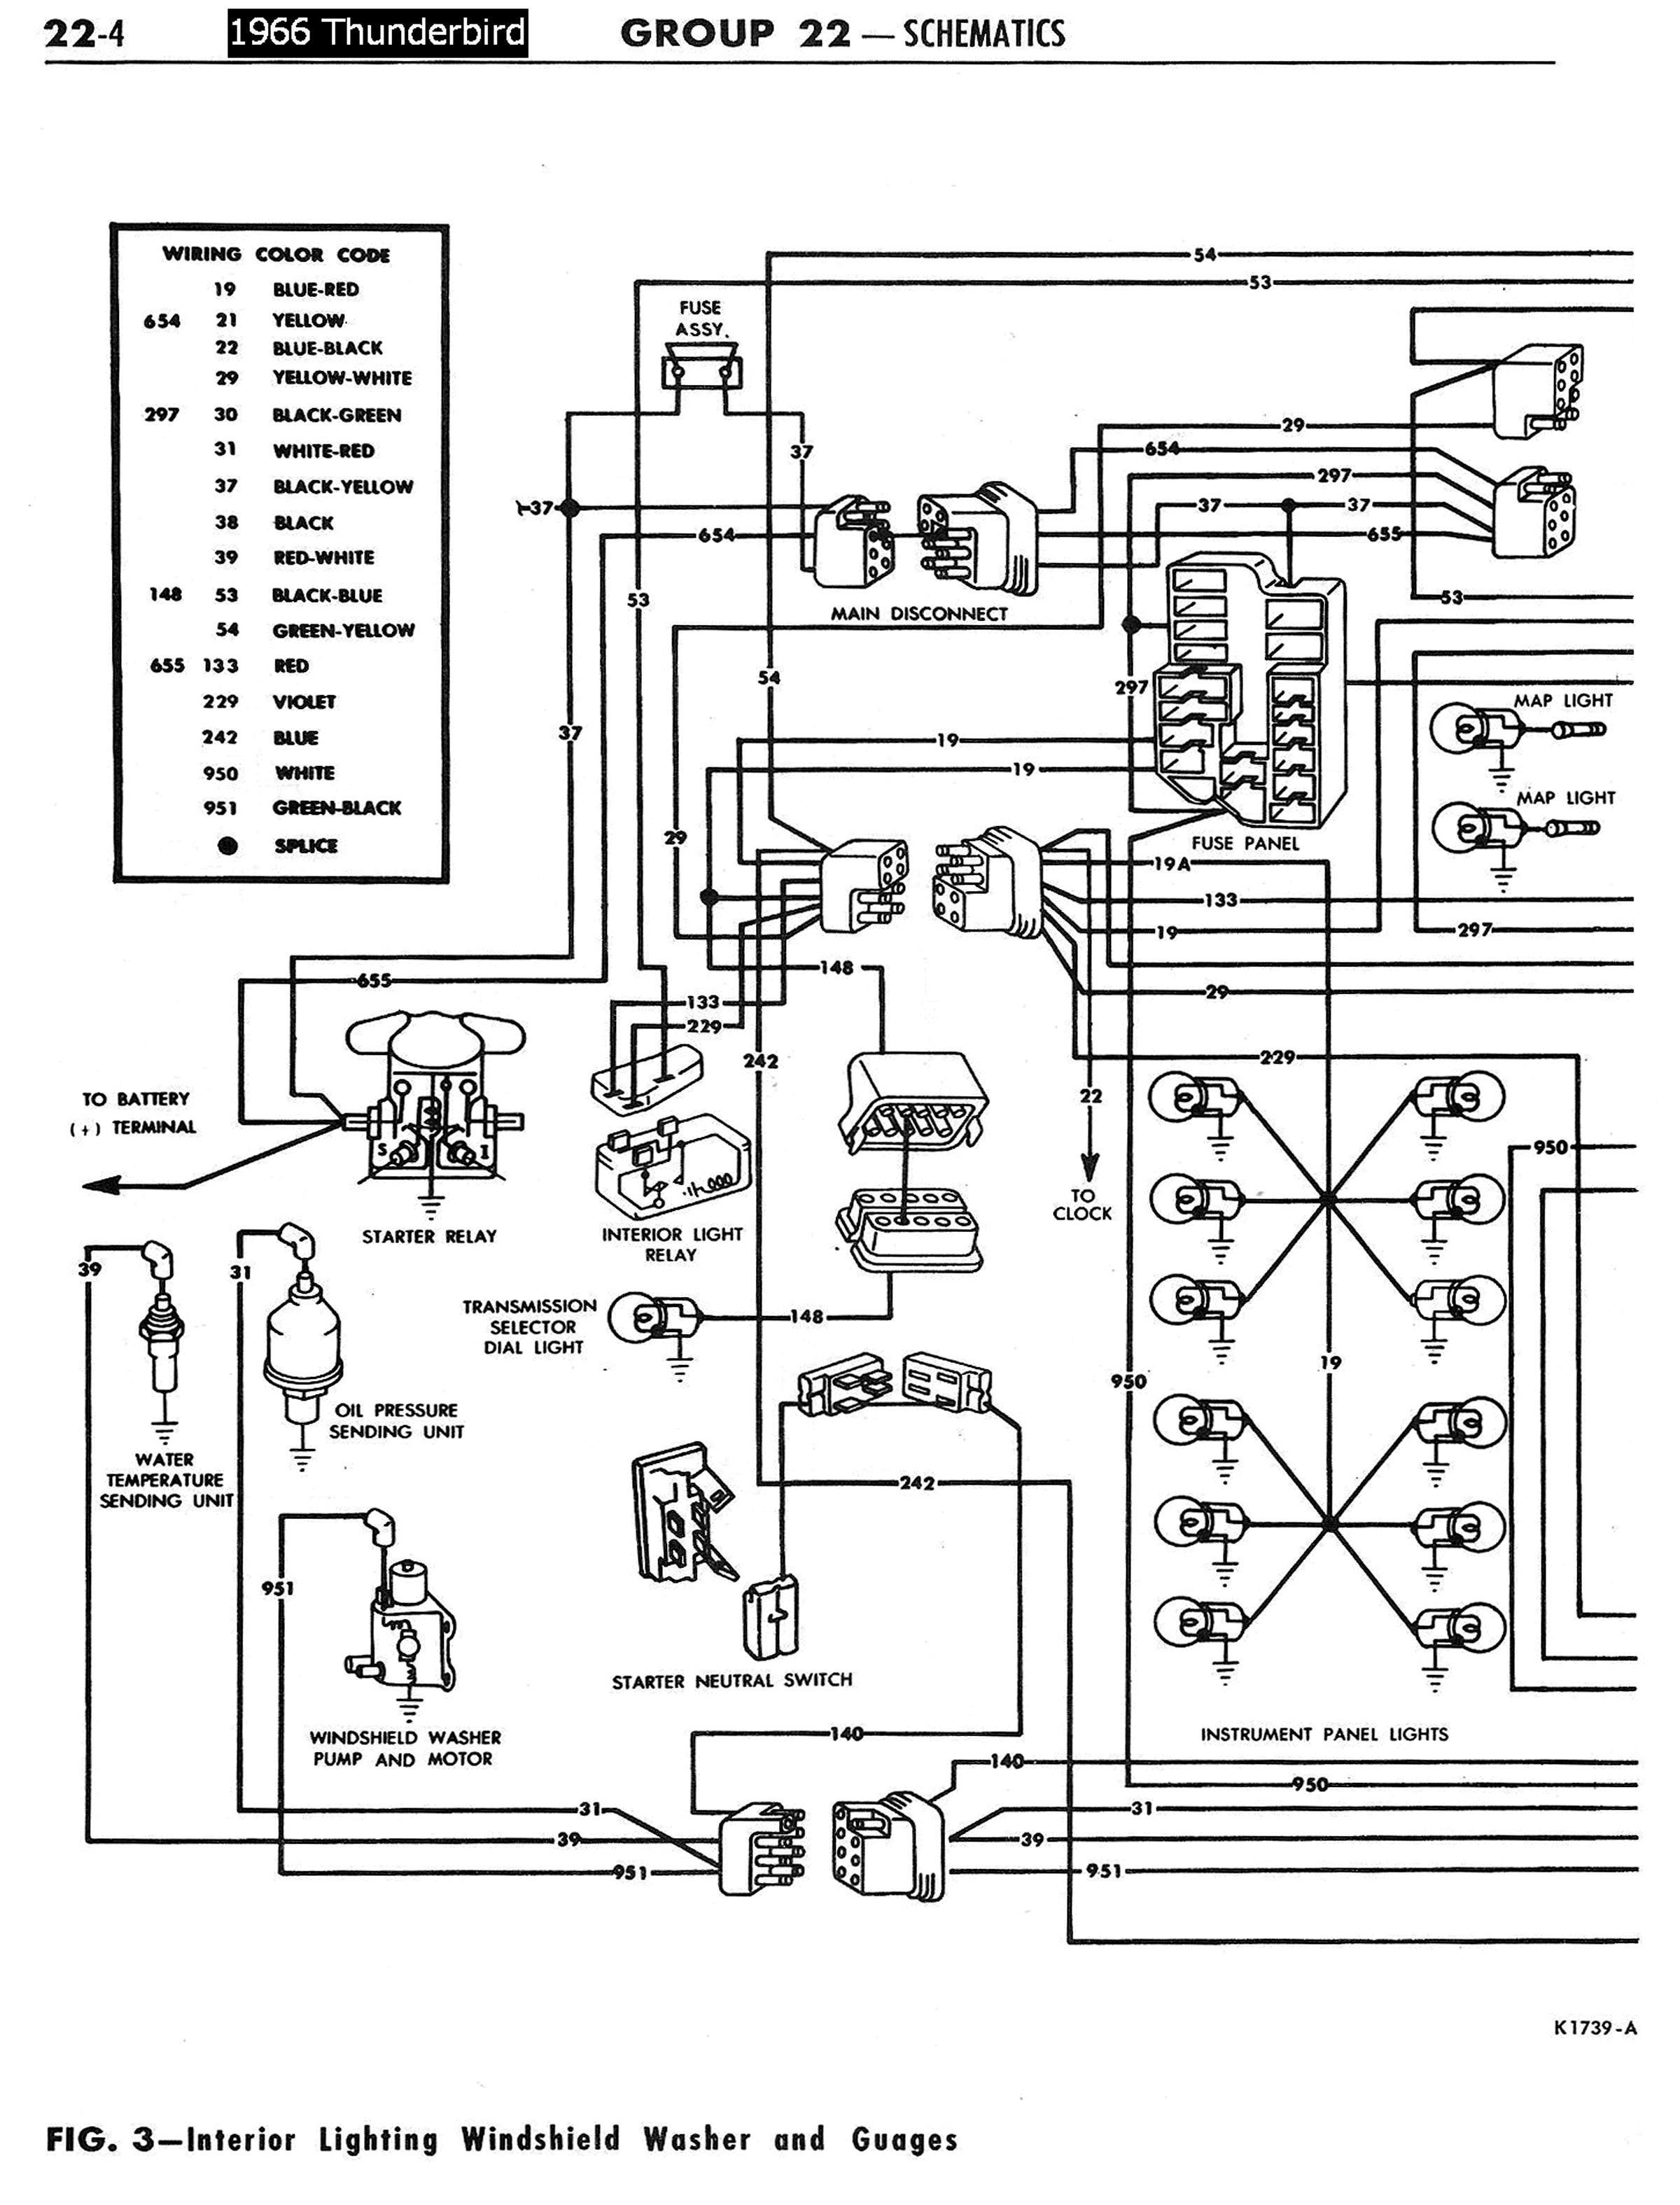 F100 Turn Signal Wiring Diagram Free Download Diagrams 1950 Ford 1965 Thunderbird Basic